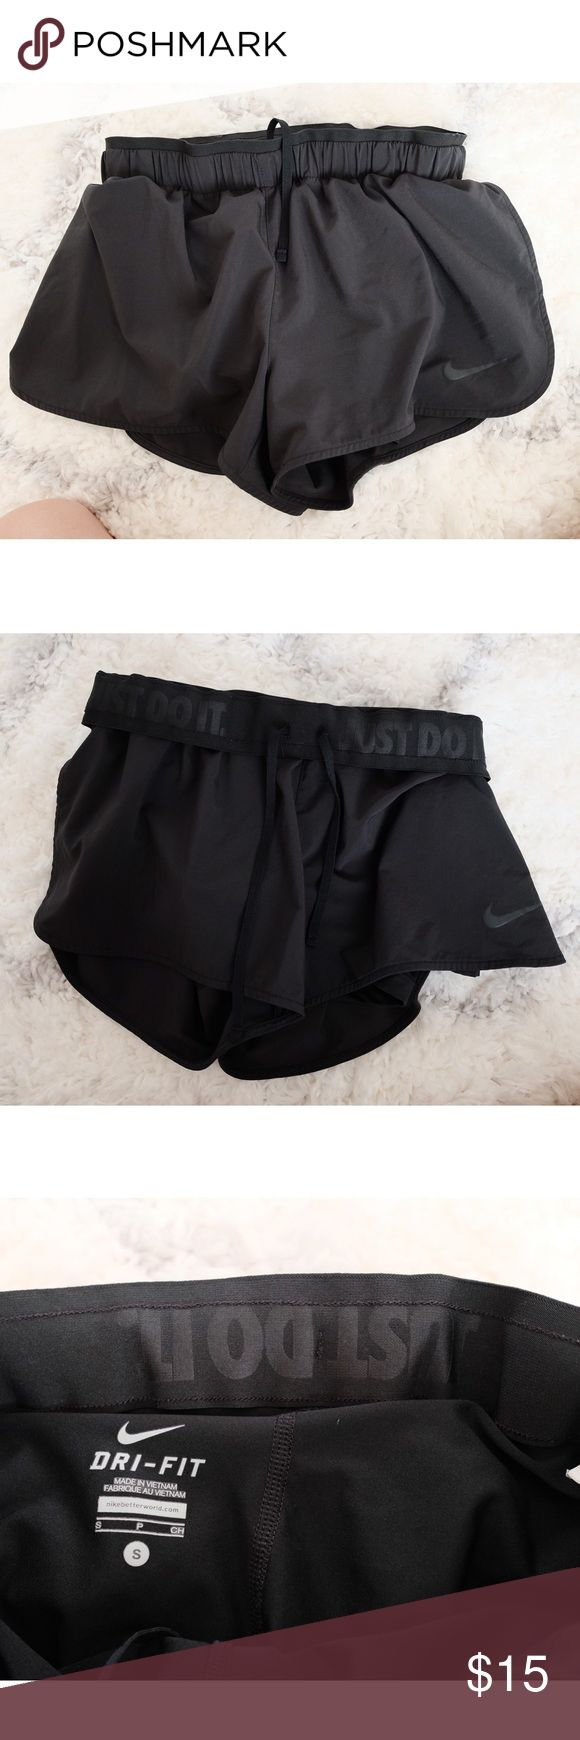 Black Nike shorts with built in bloomers Black Nike shorts. Dry fit material. Bloomers built in. Worn once. Size small. Nike Shorts